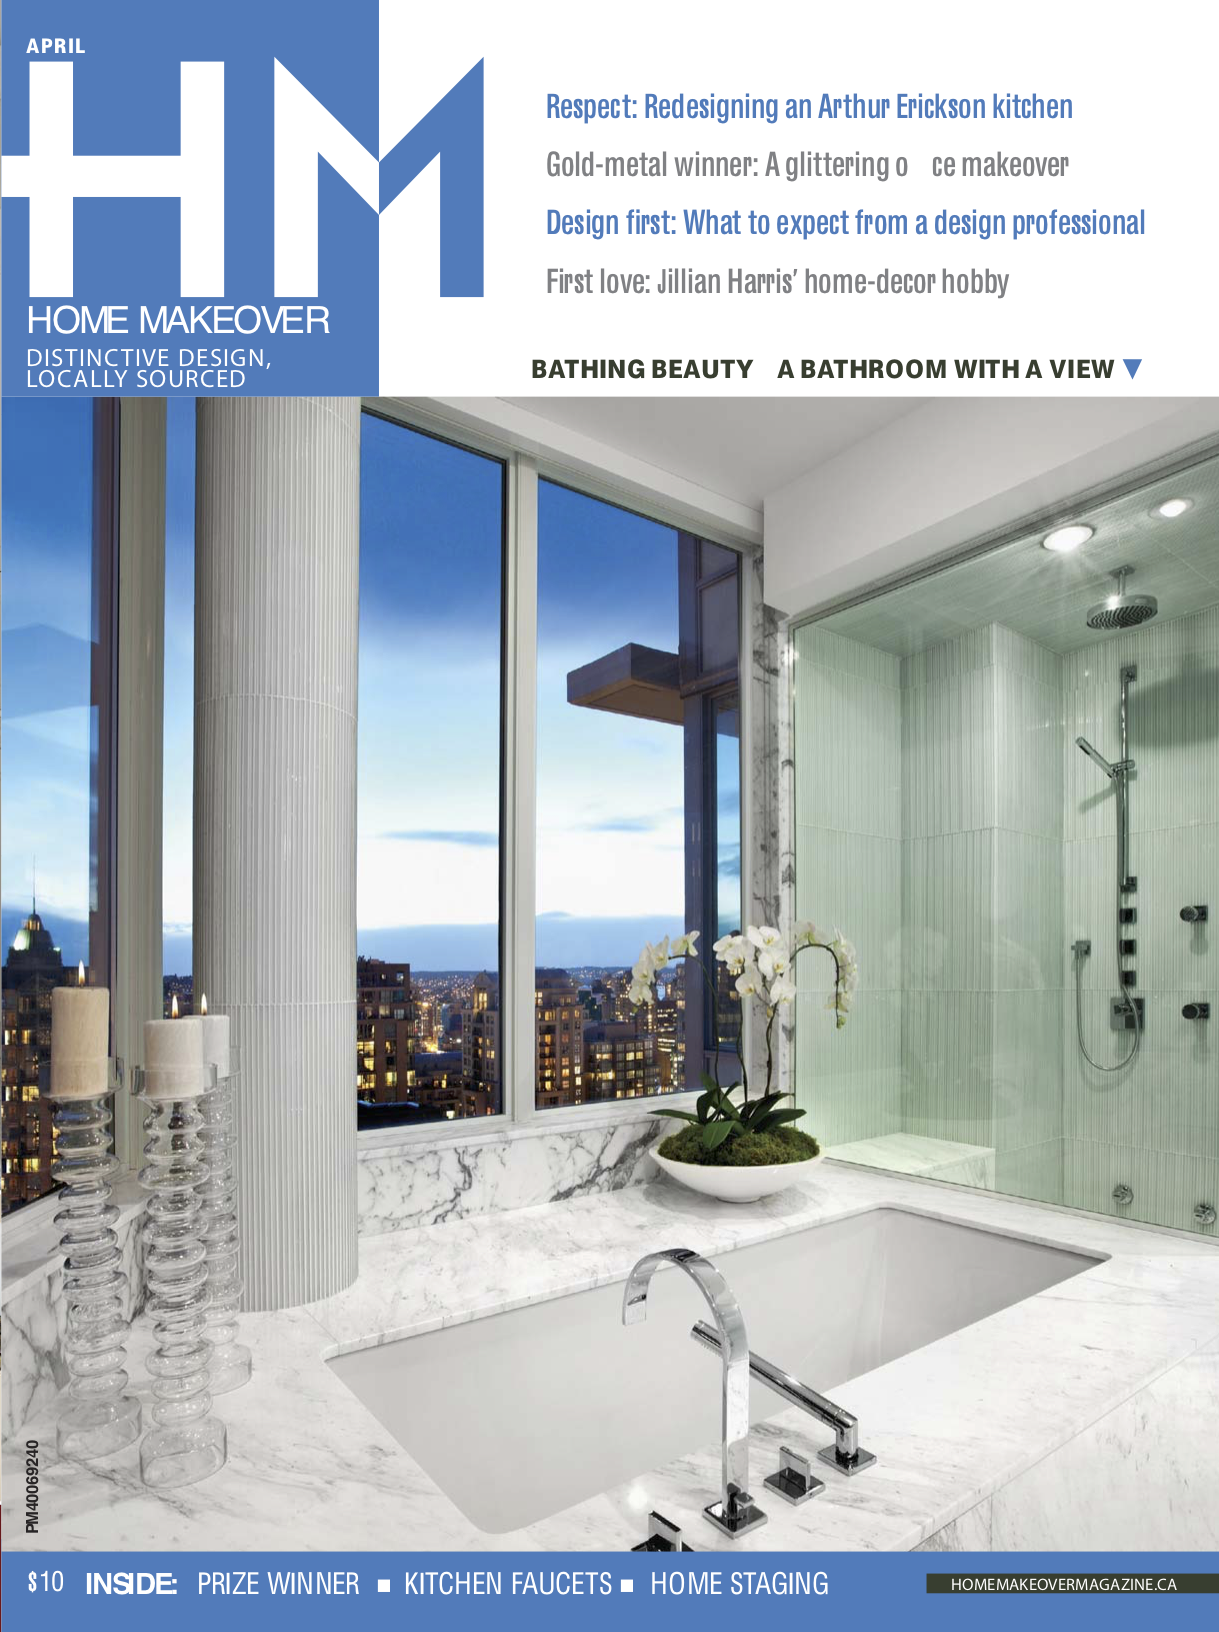 home_makeover_magazine_vancouver_-_april_2011 (dragged).png